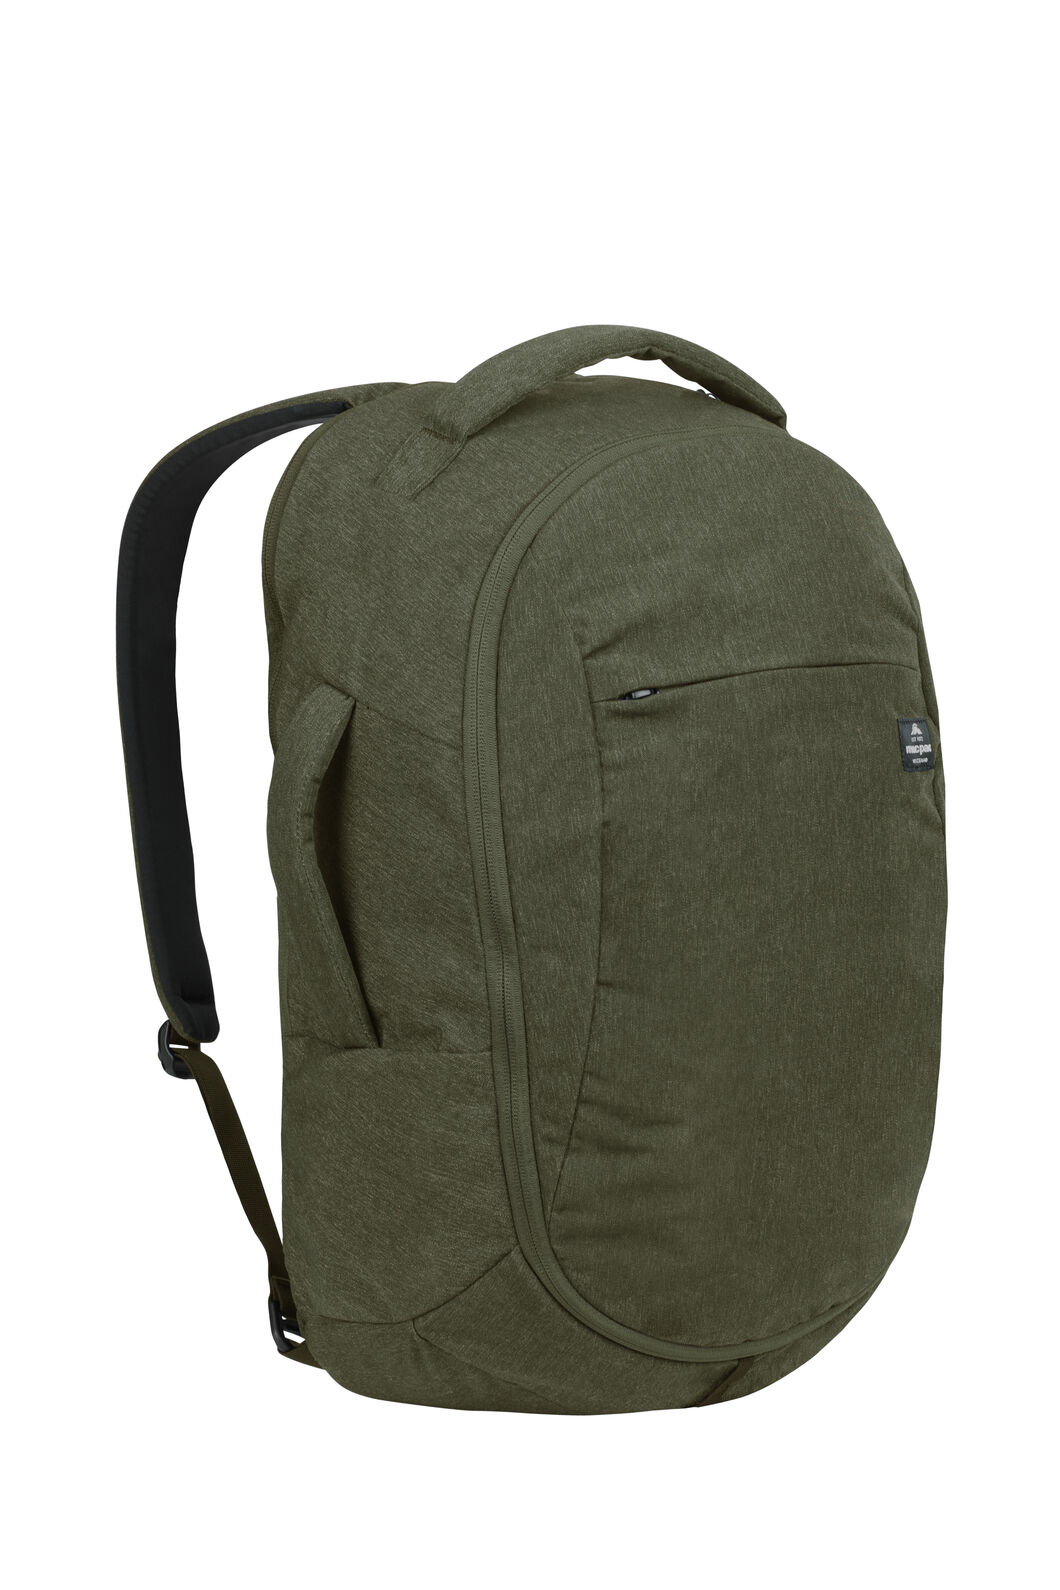 Macpac UTSIFOY 1.1 25L Backpack, Grape Leaf, hi-res